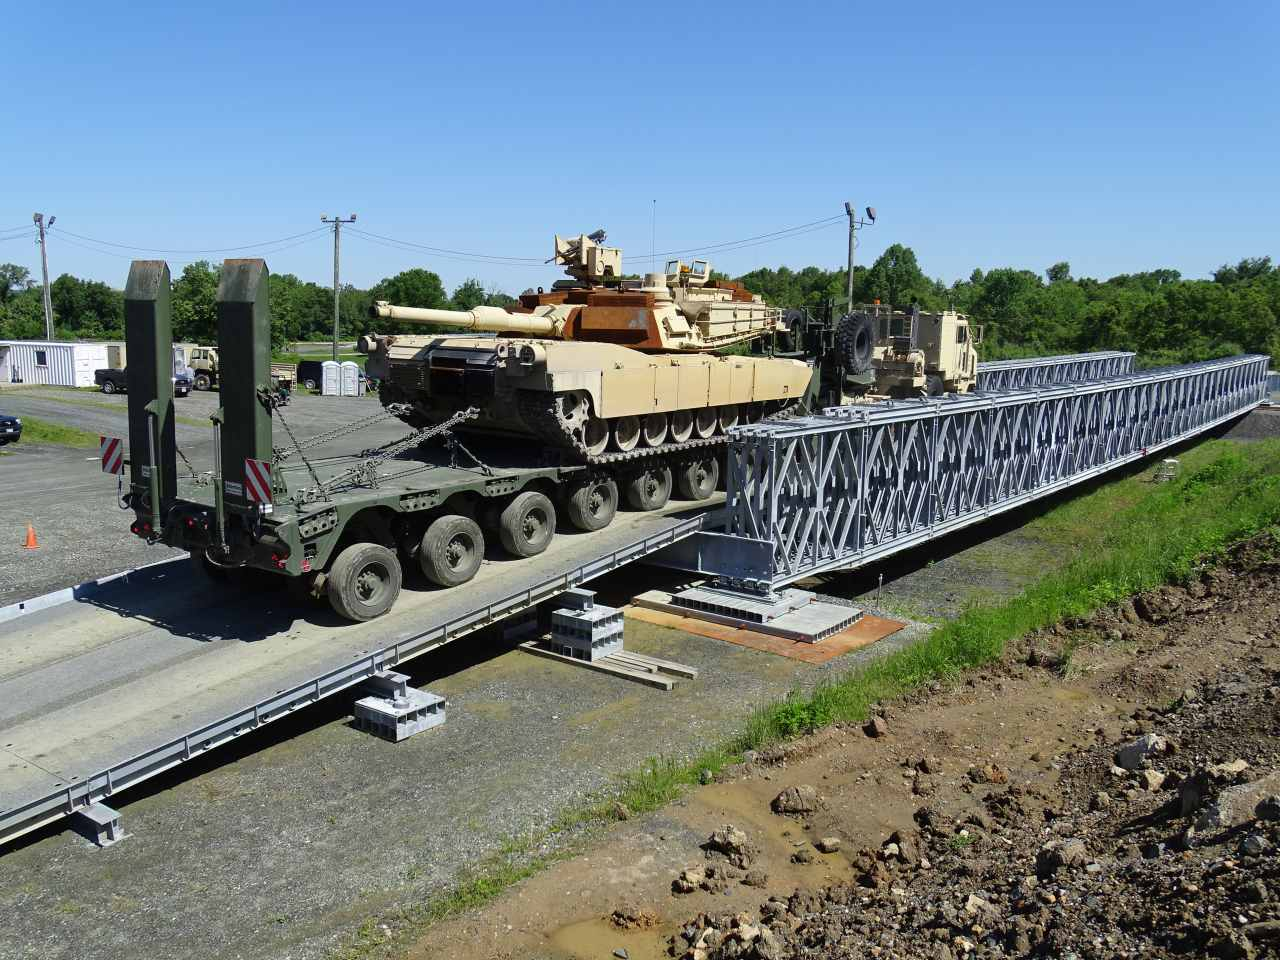 Photo: M1 Abrams crossing a dry gap bridge. Credit: Acrow Corporation of America